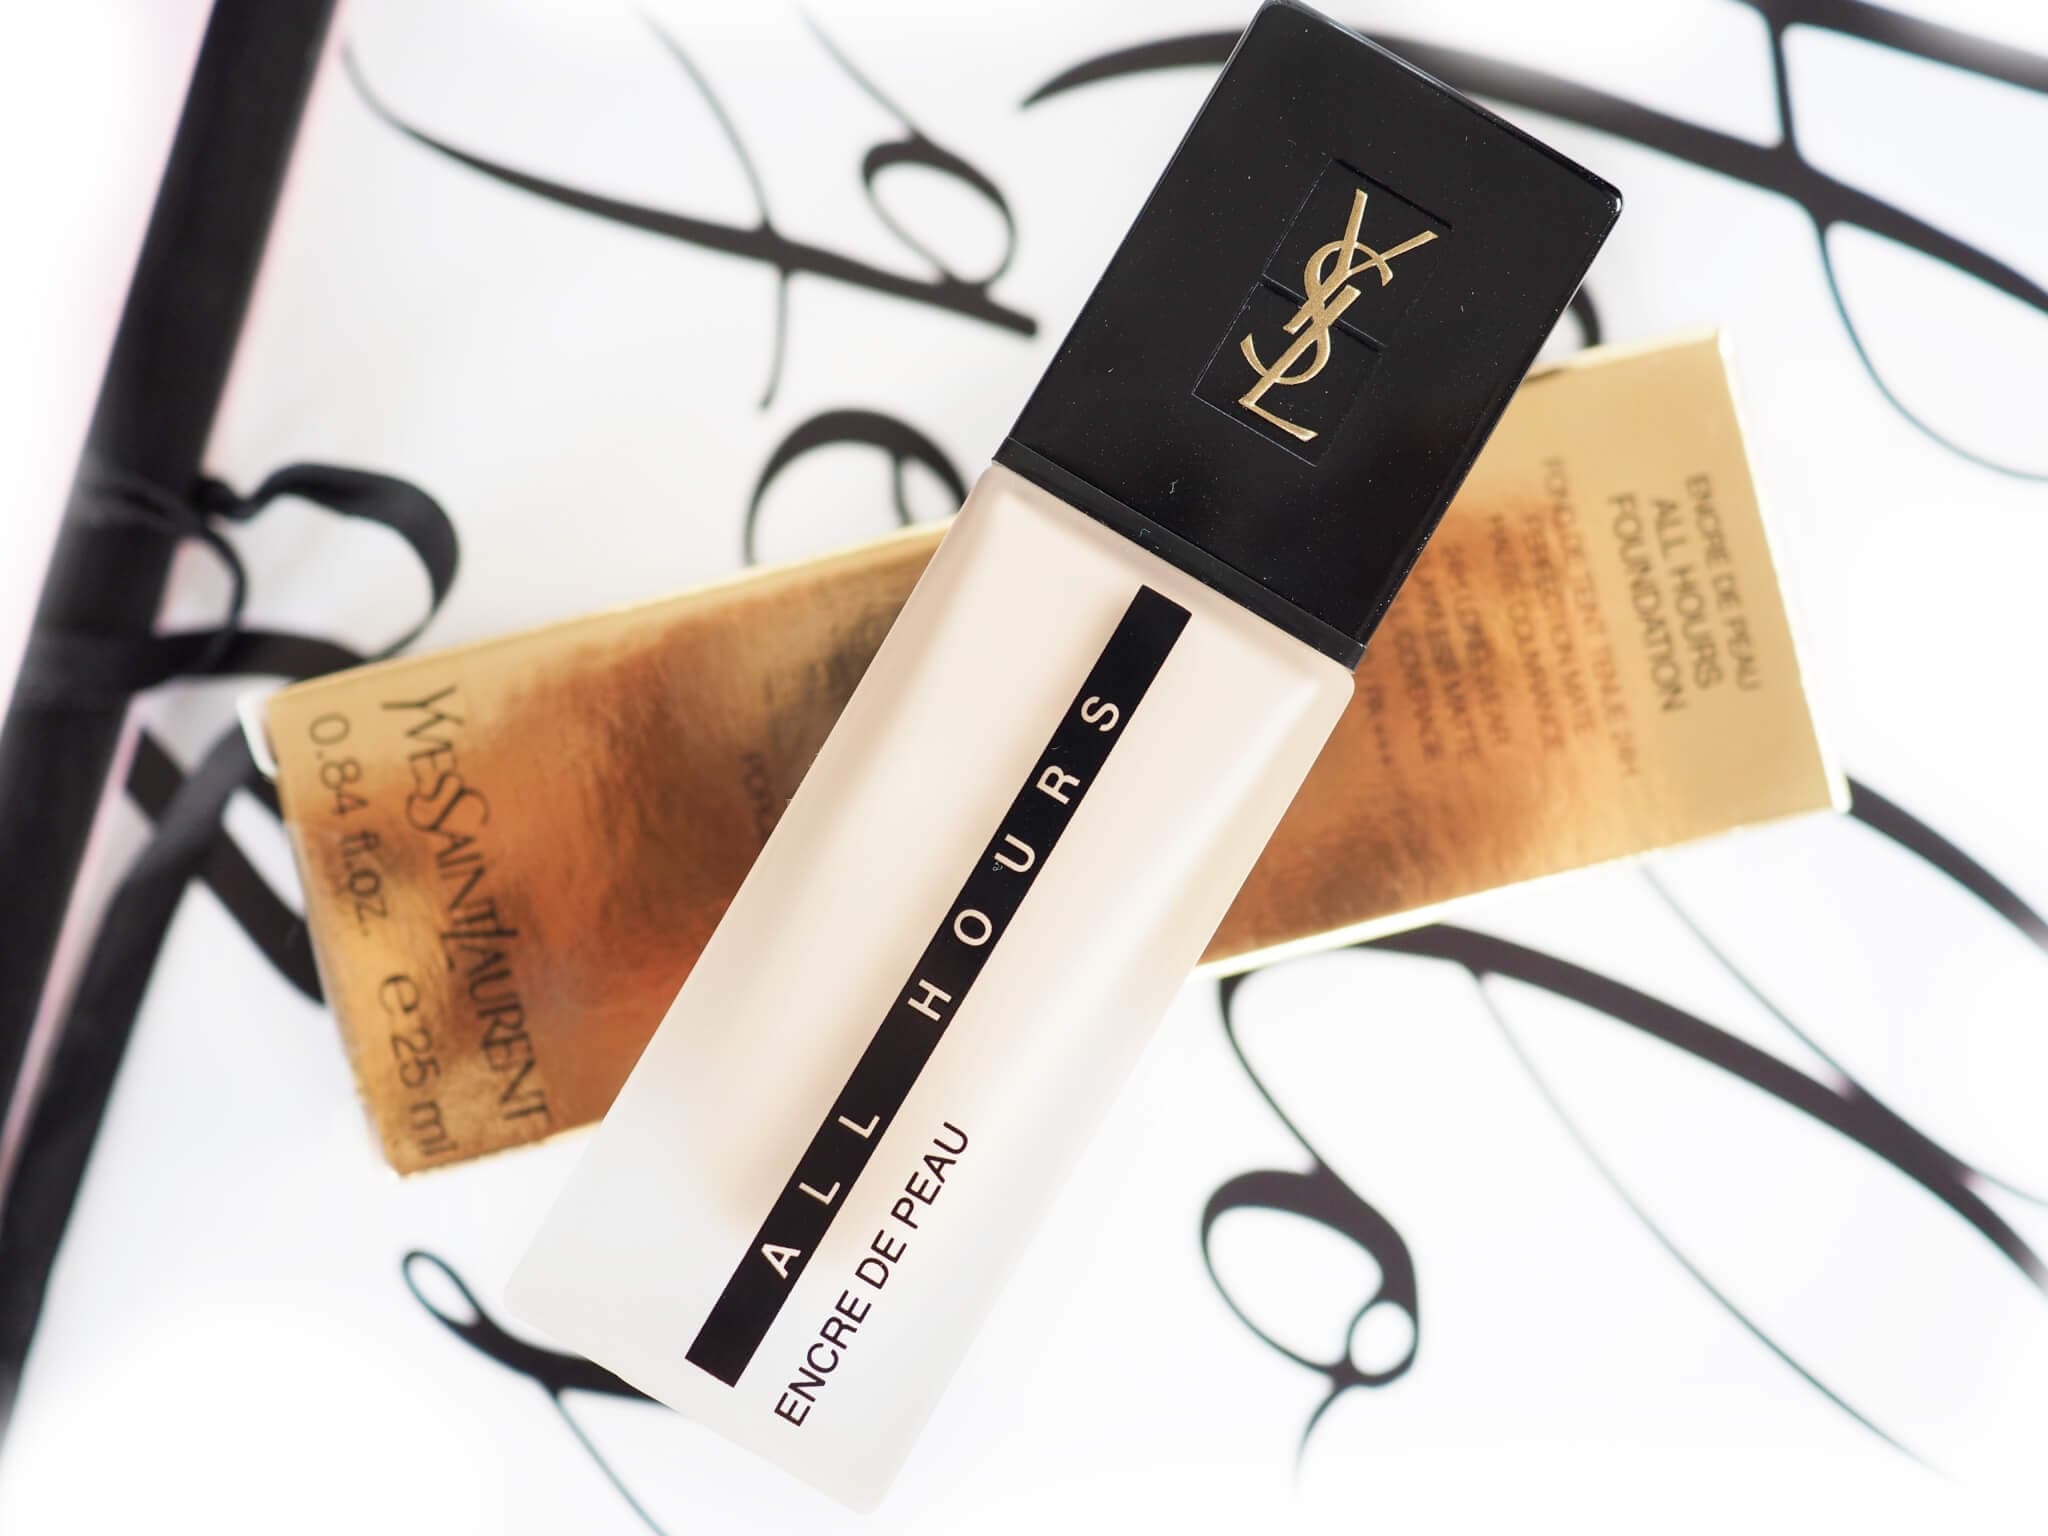 YSL ENCRE DE PEAU ALL HOURS